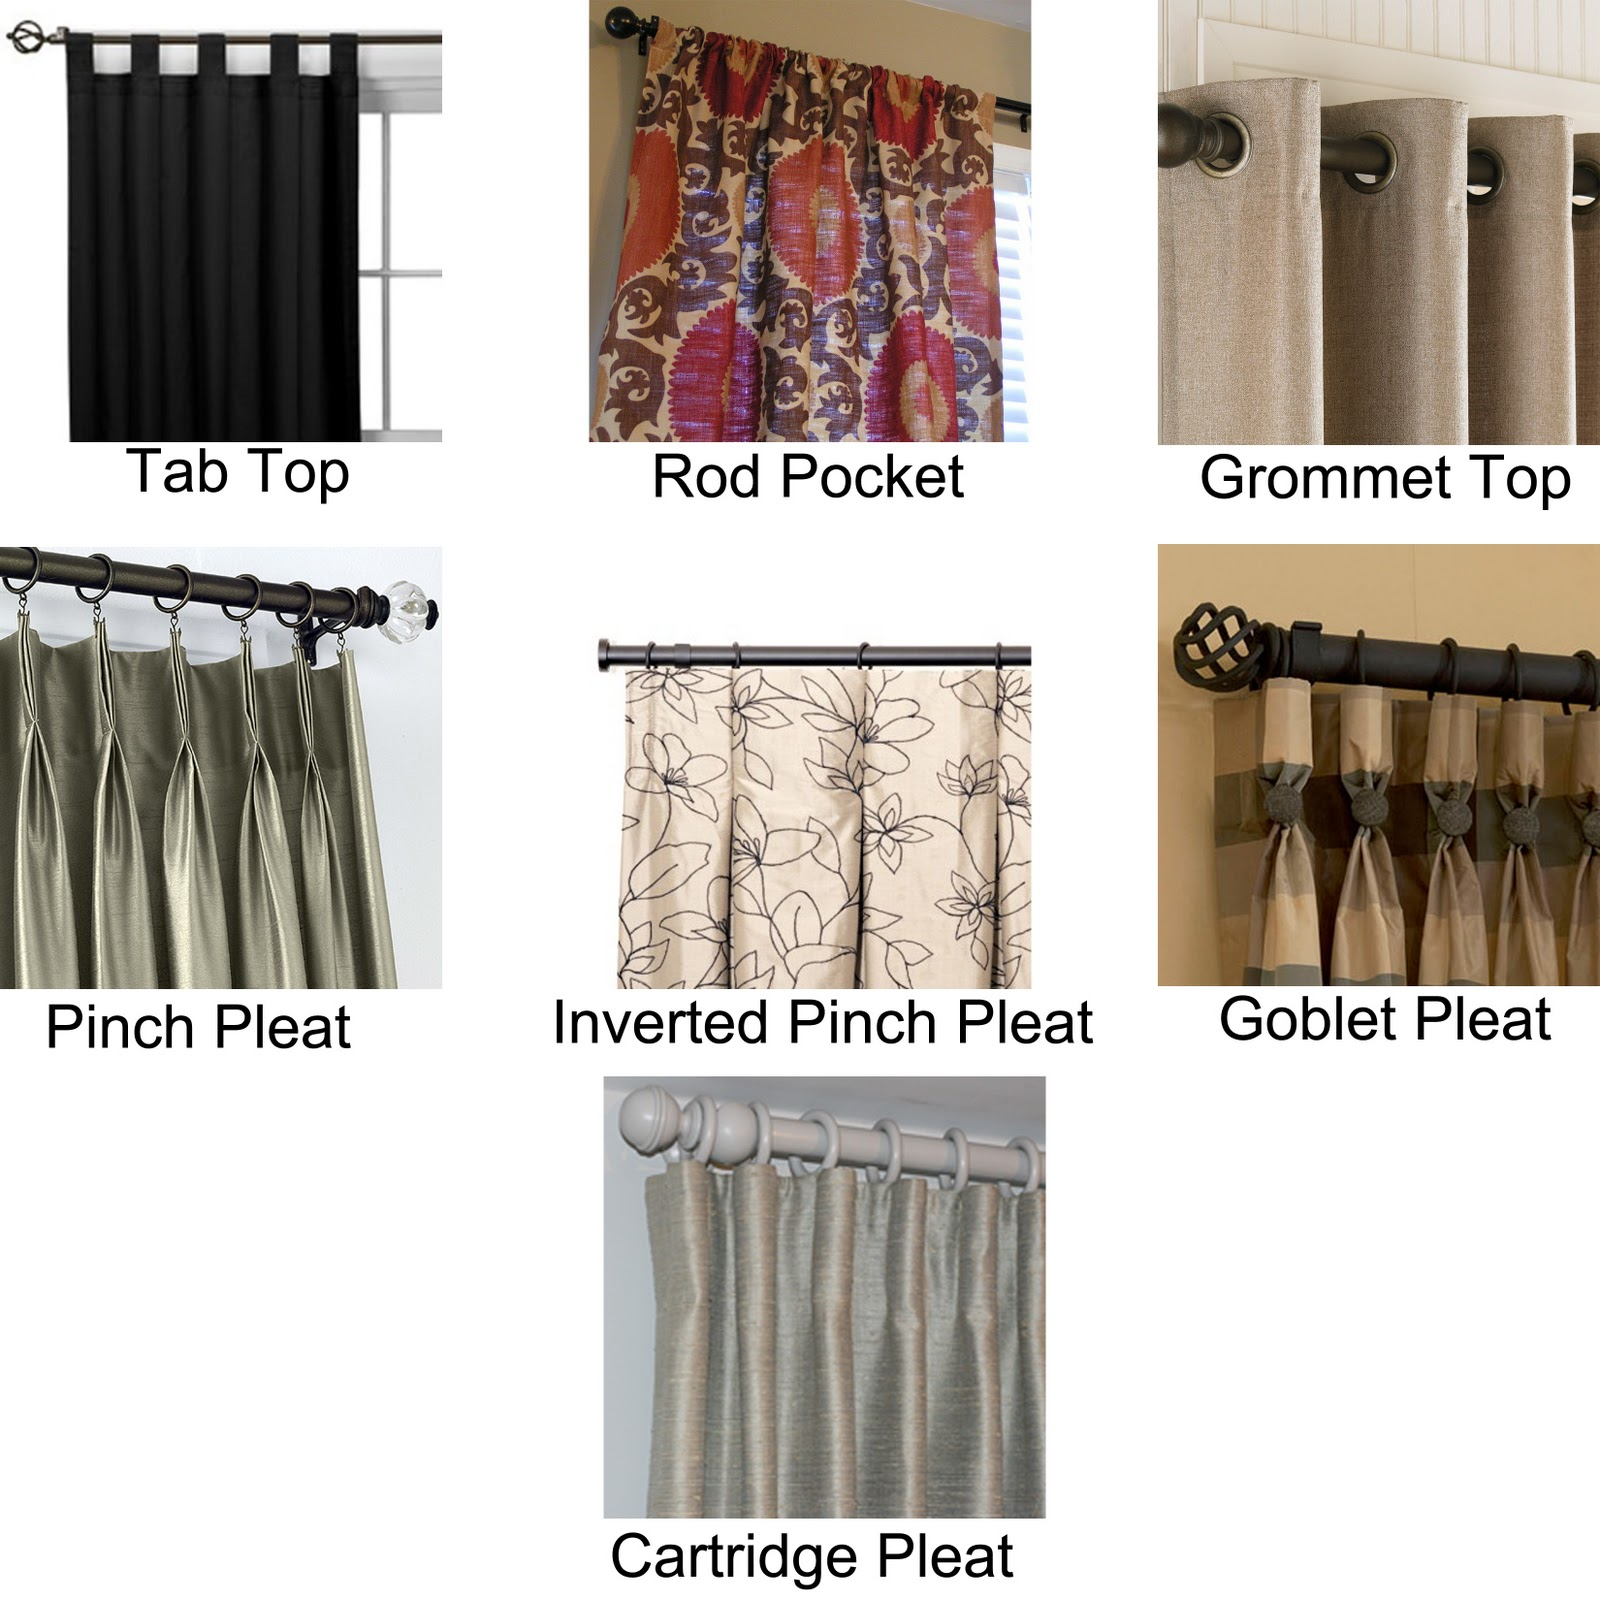 Diy hidden tab curtains - Images of curtans ...